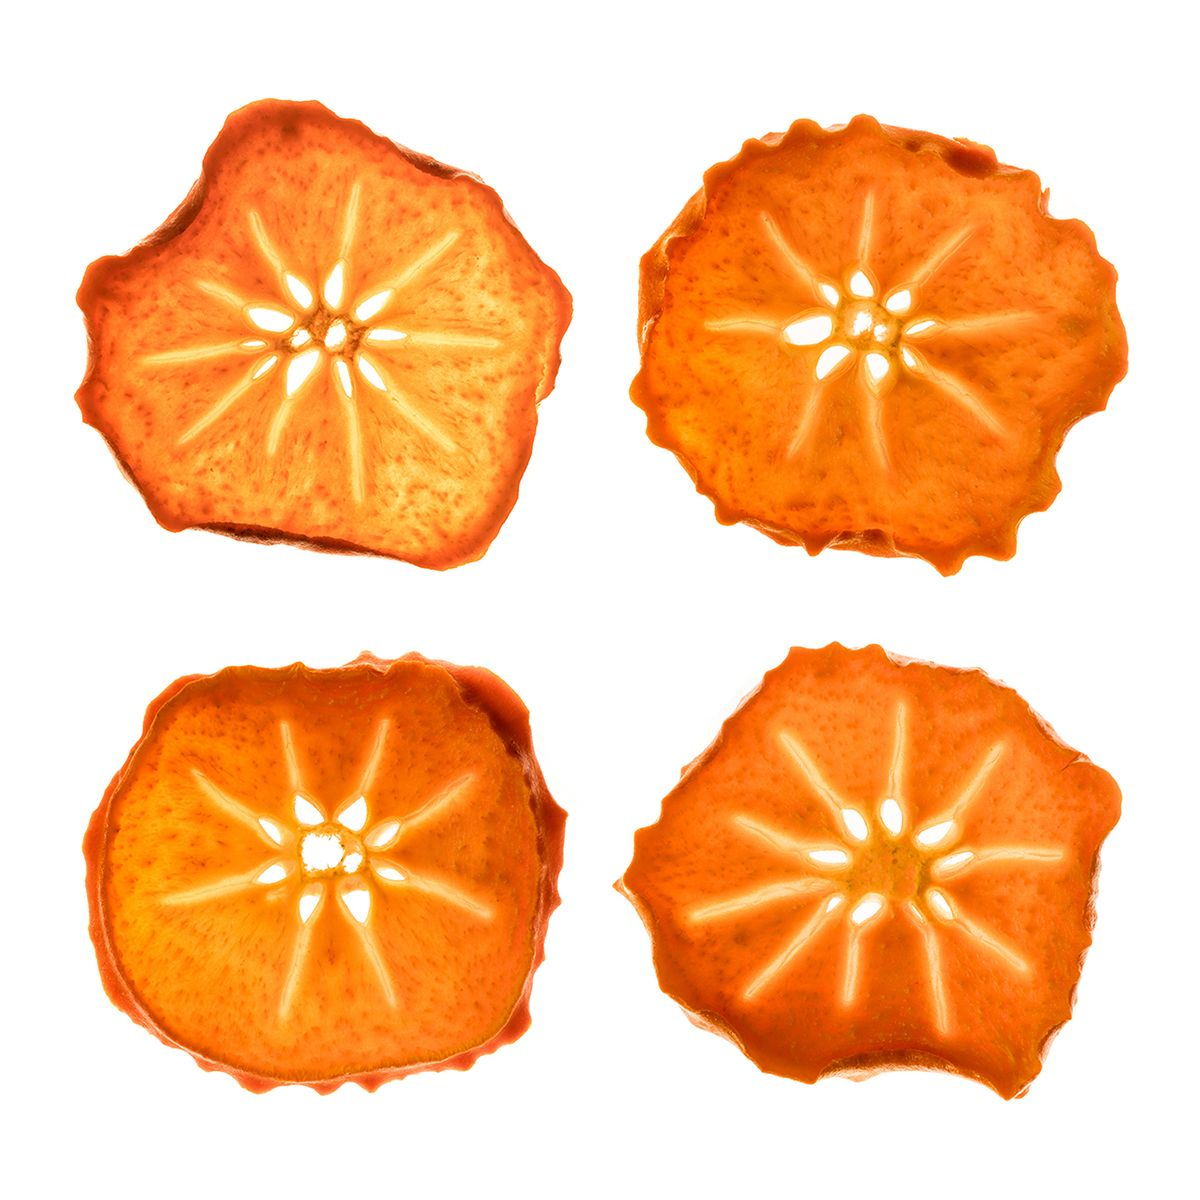 Grid of persimmons on white